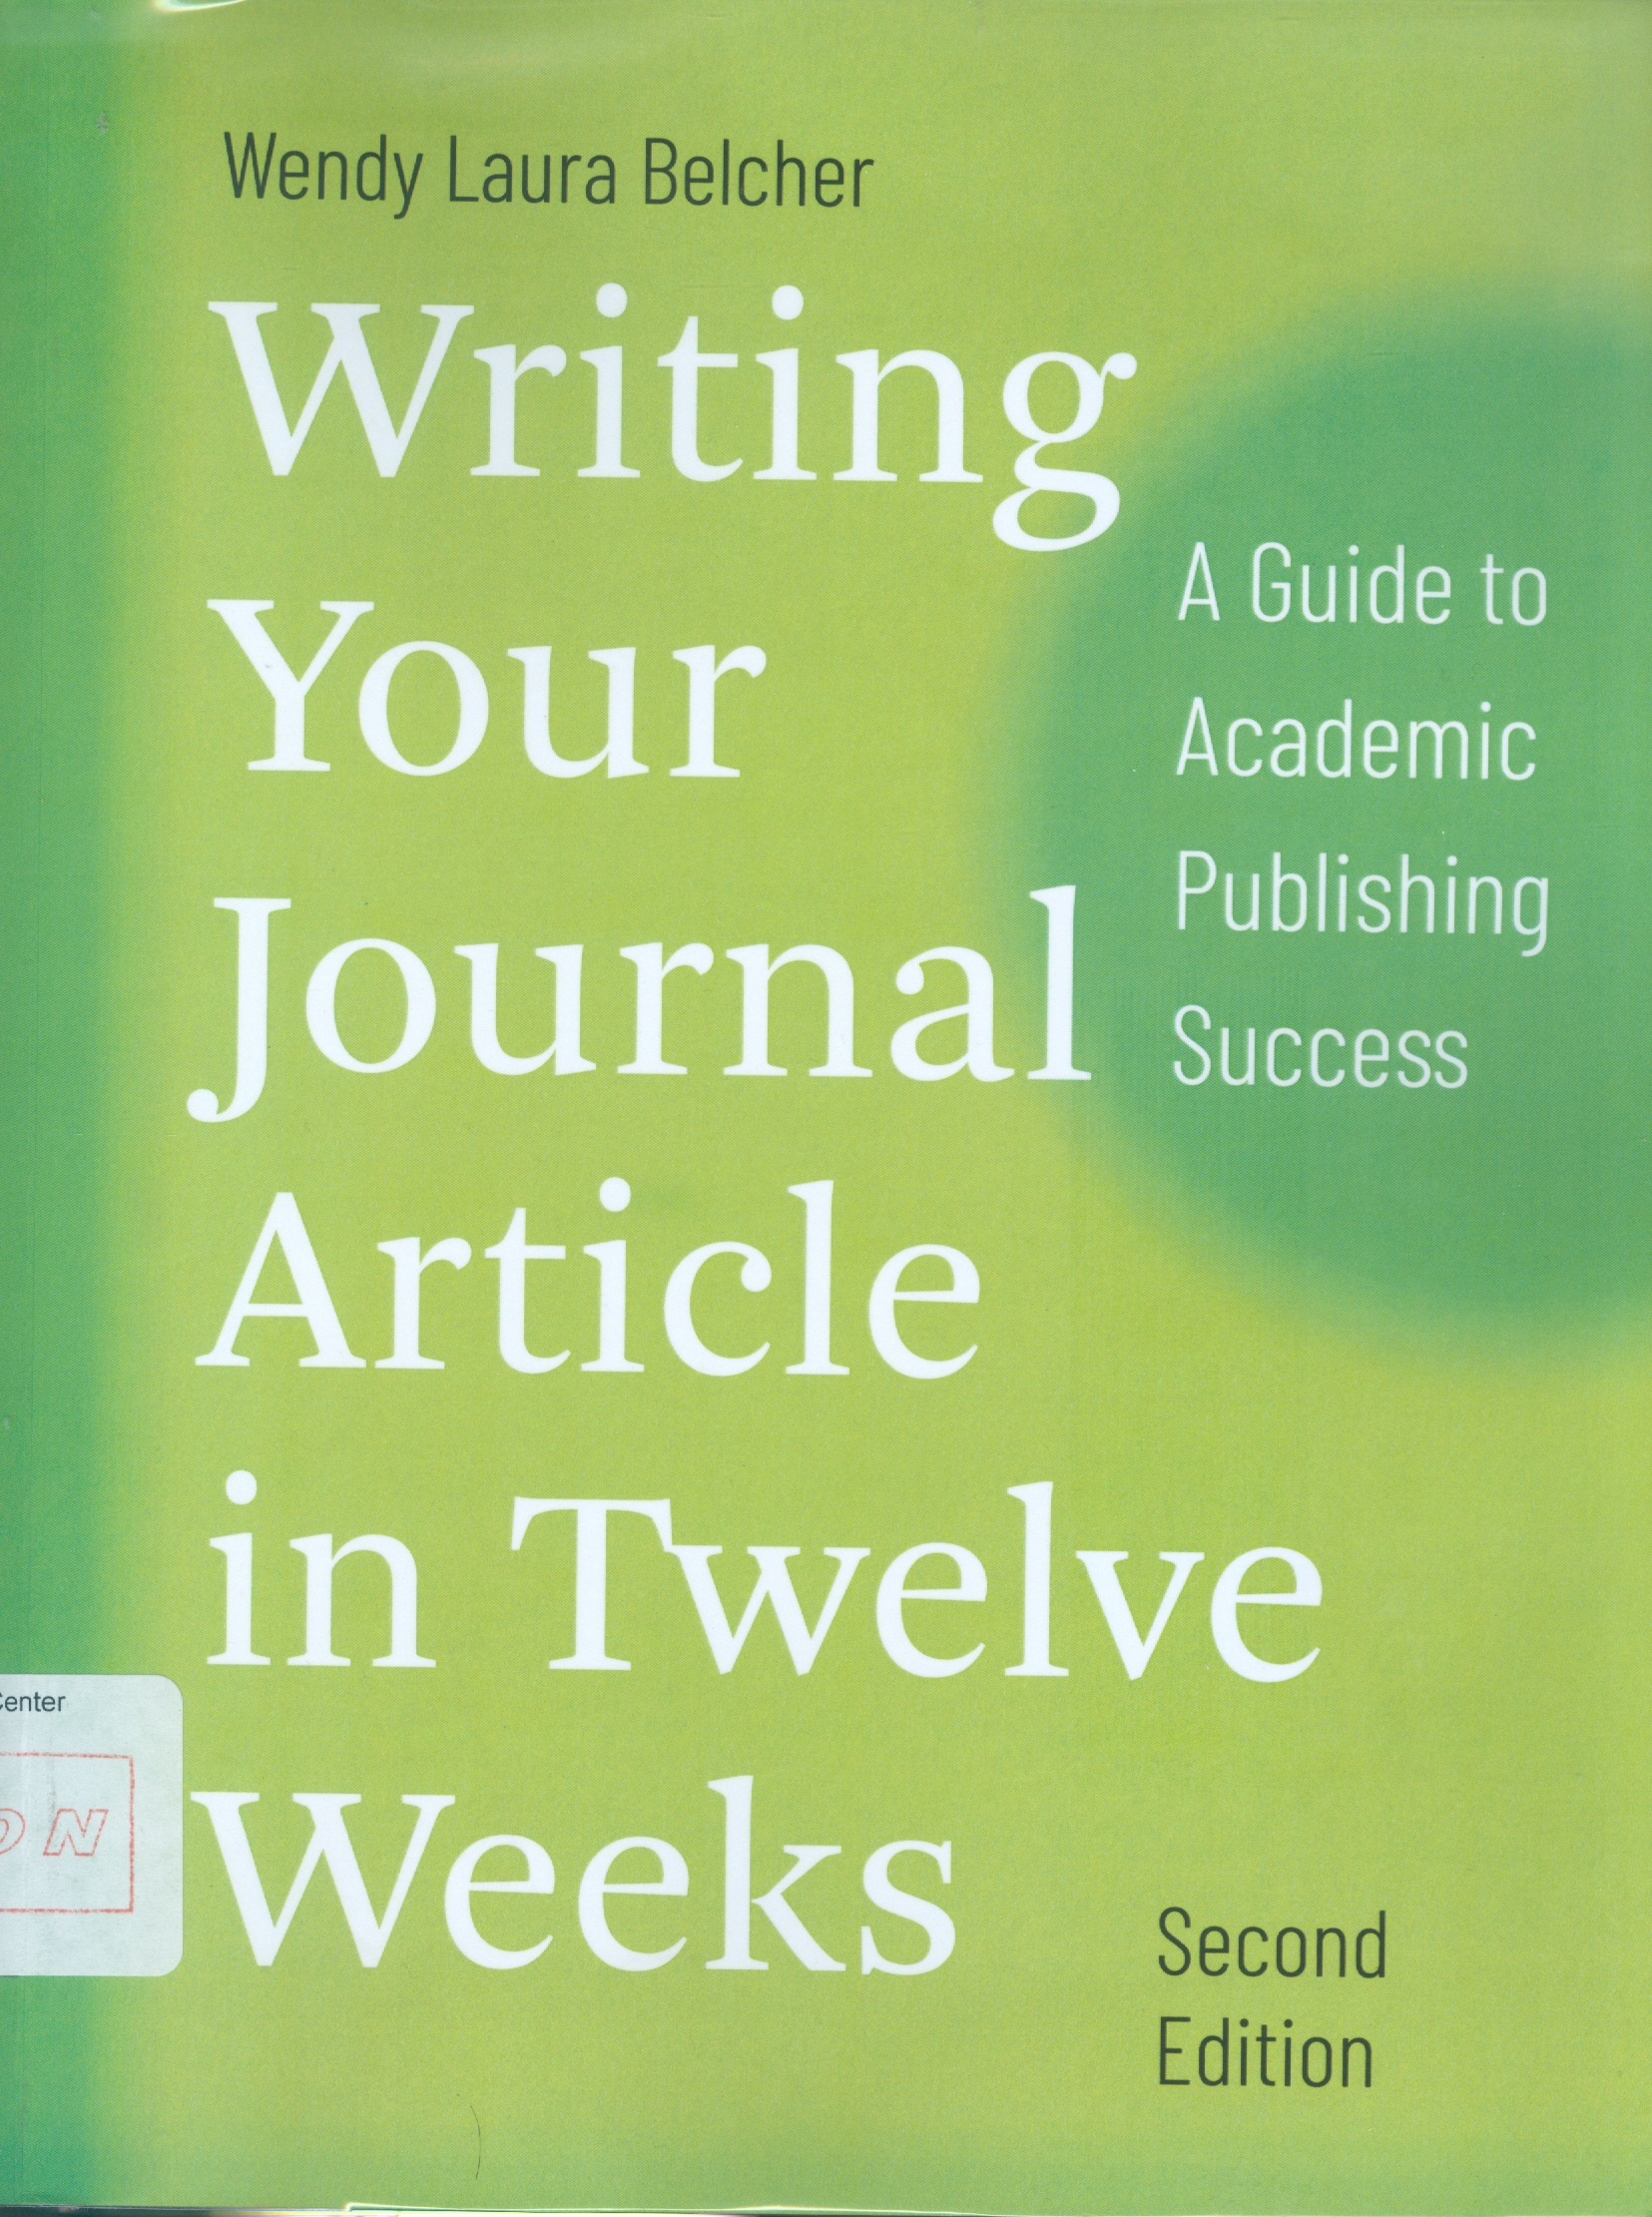 writing your journal2nd.jpg